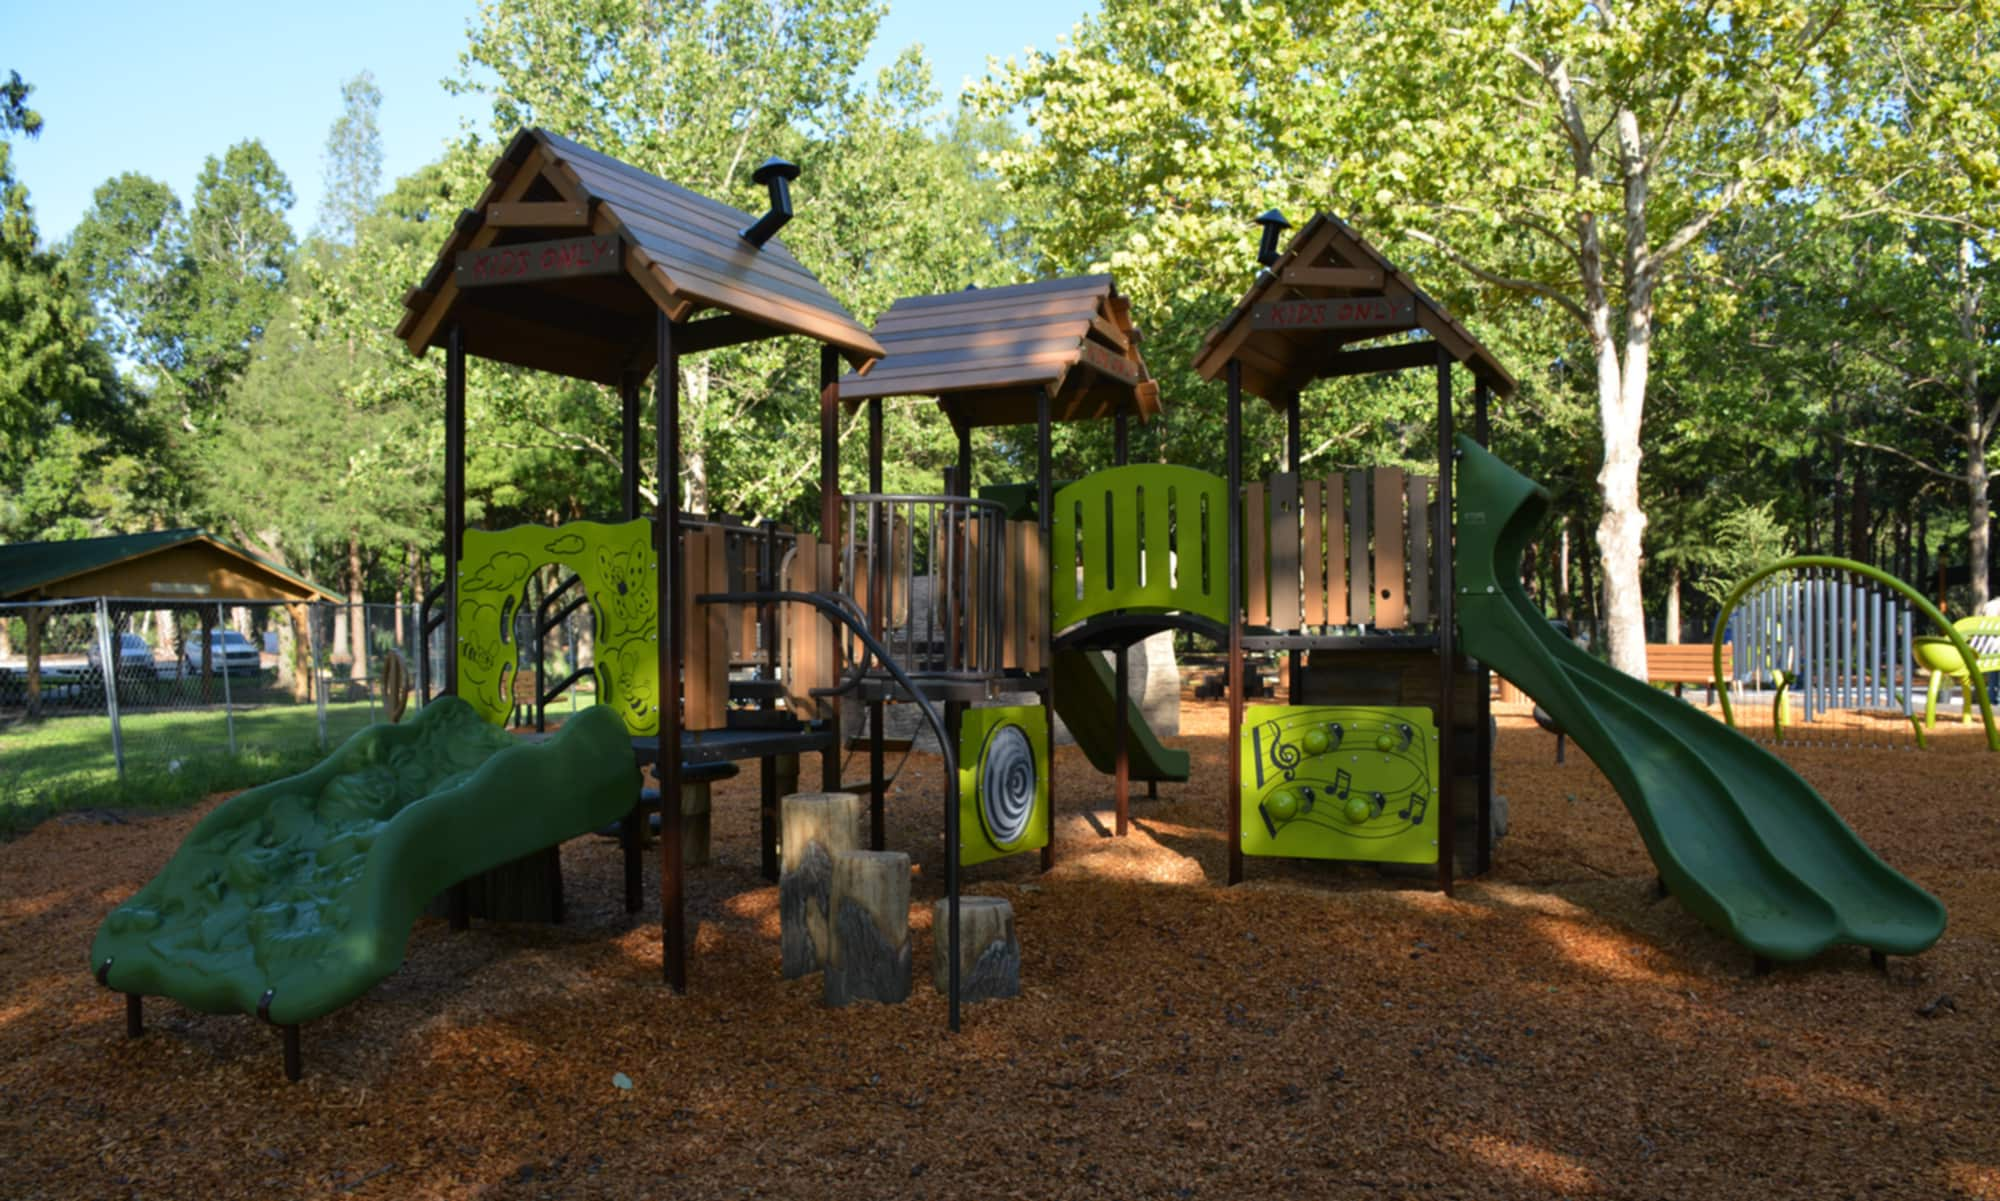 Playground equipment, including slides and stairs, at Rotary Playground at Hernando's Landing at Lake Parker Park in Lakeland, FL